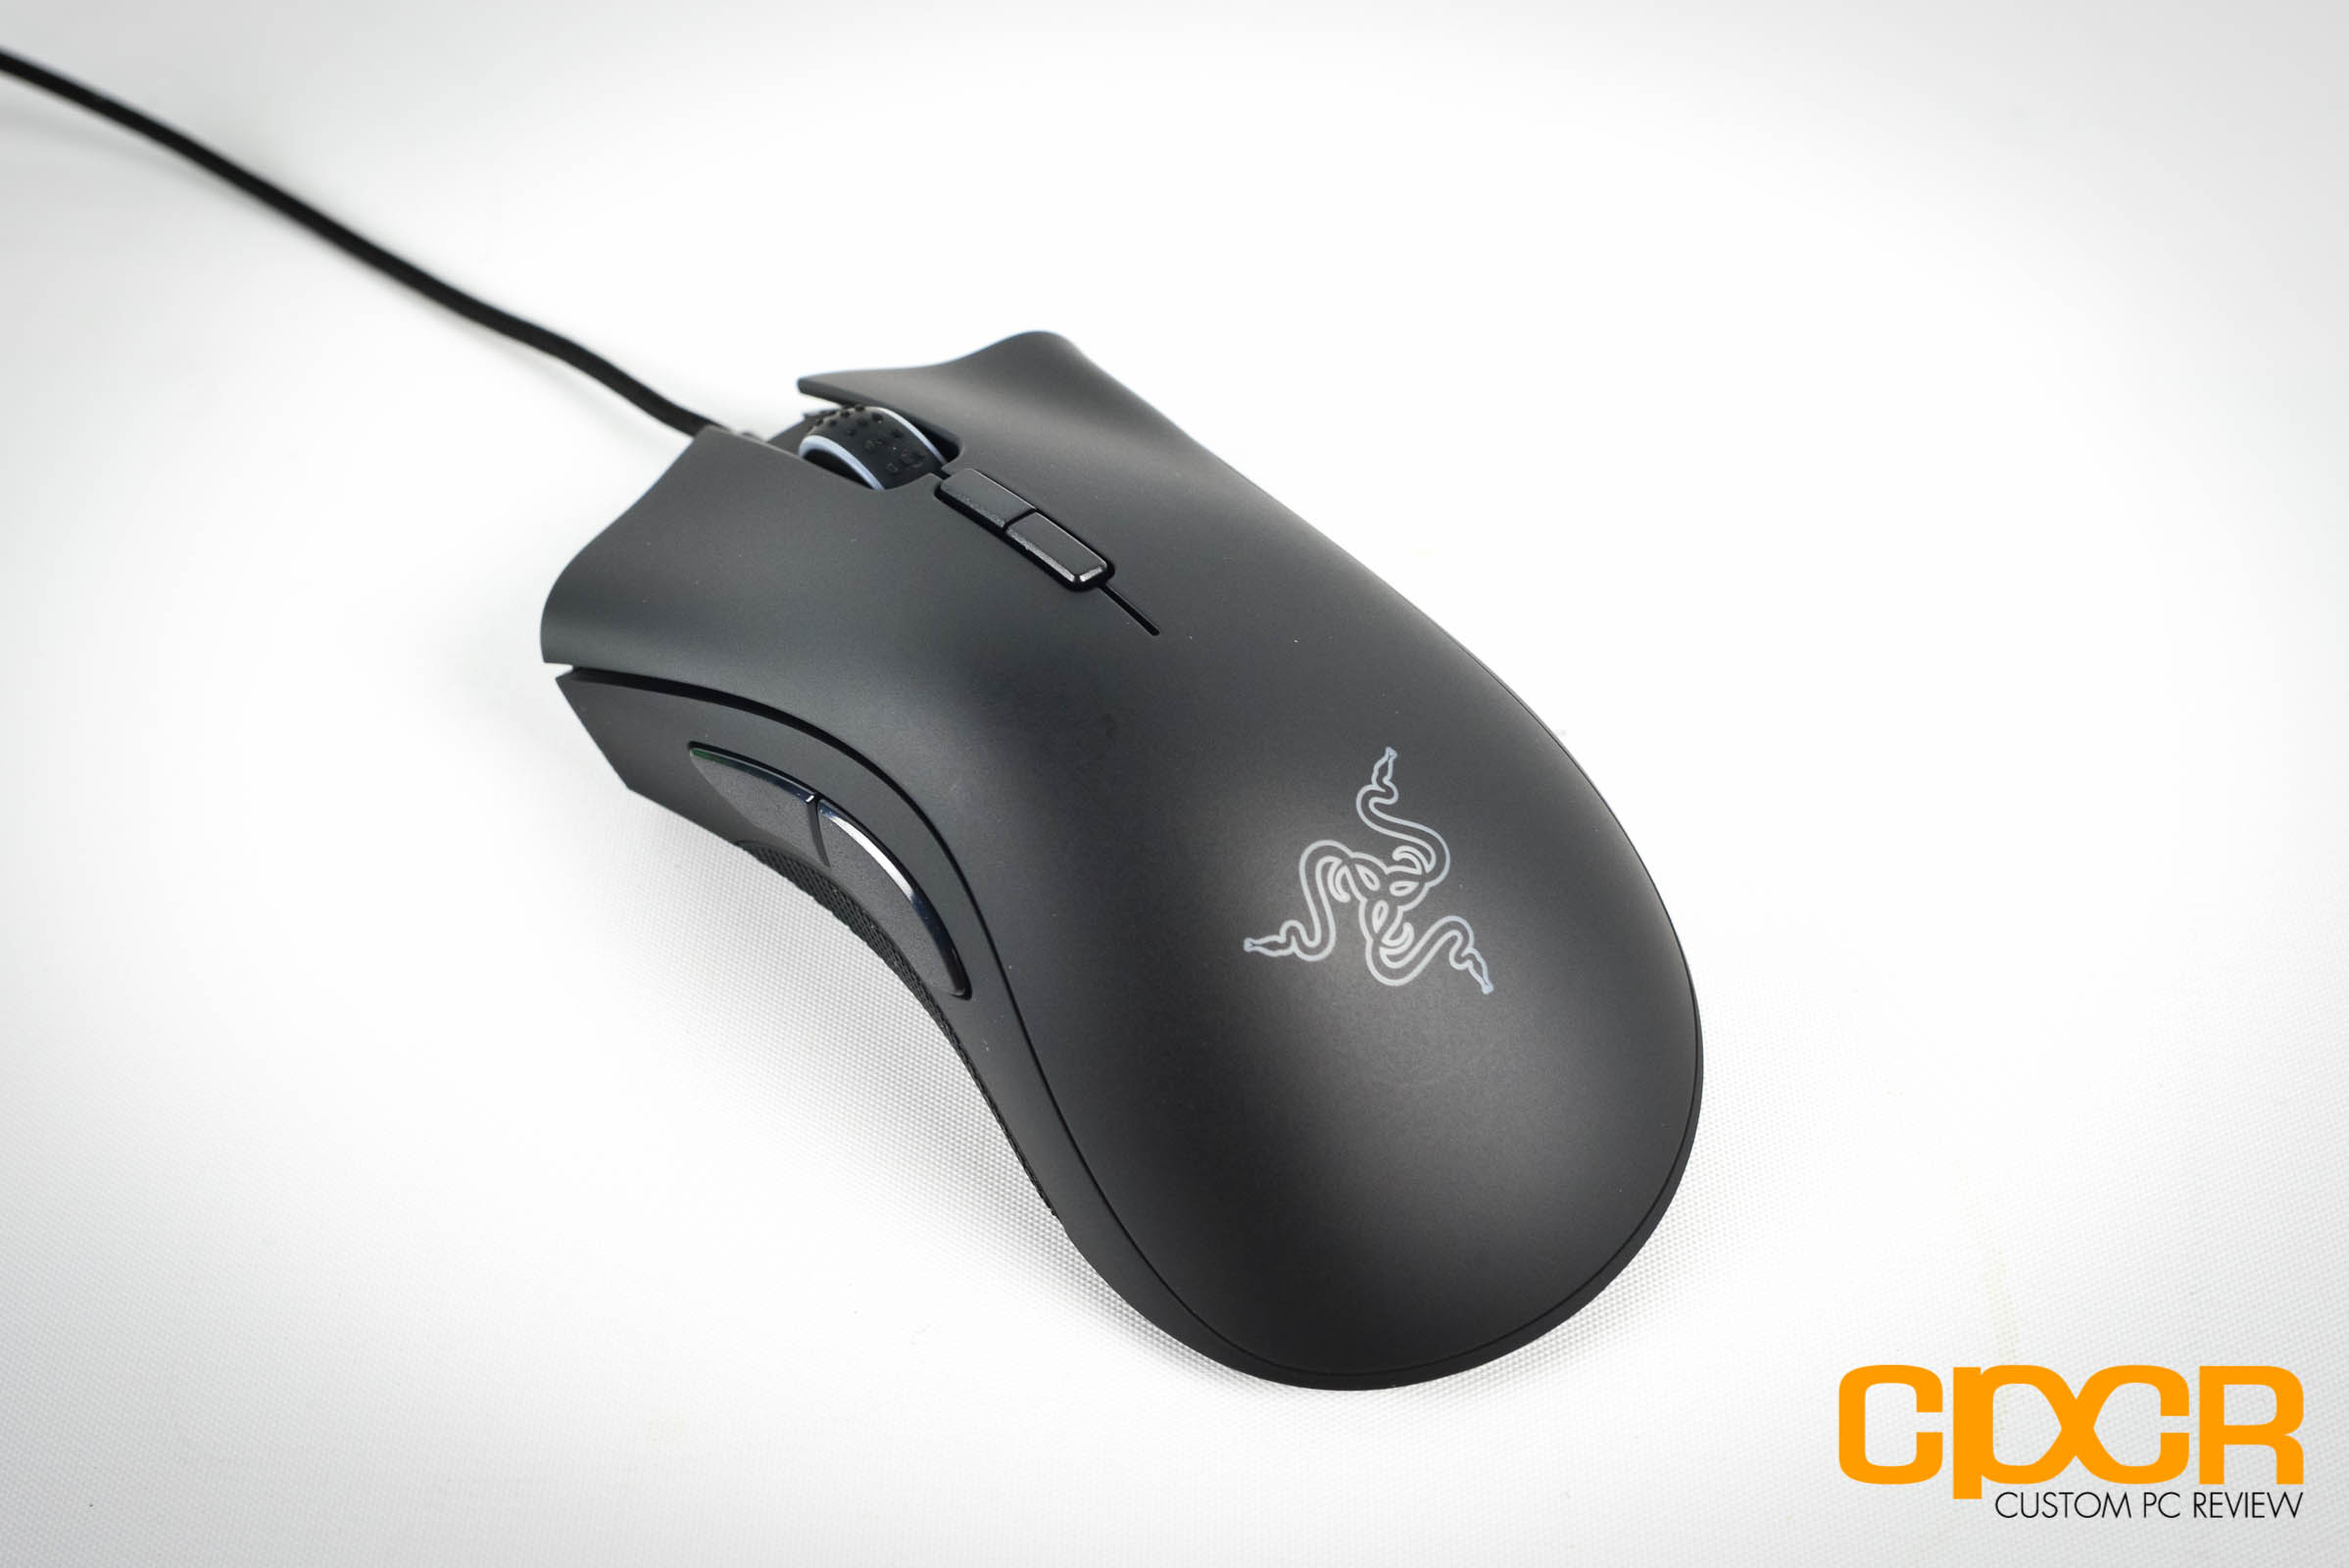 96f3437a84c razer-deathadder-elite-gaming-mouse-custom-pc-review-